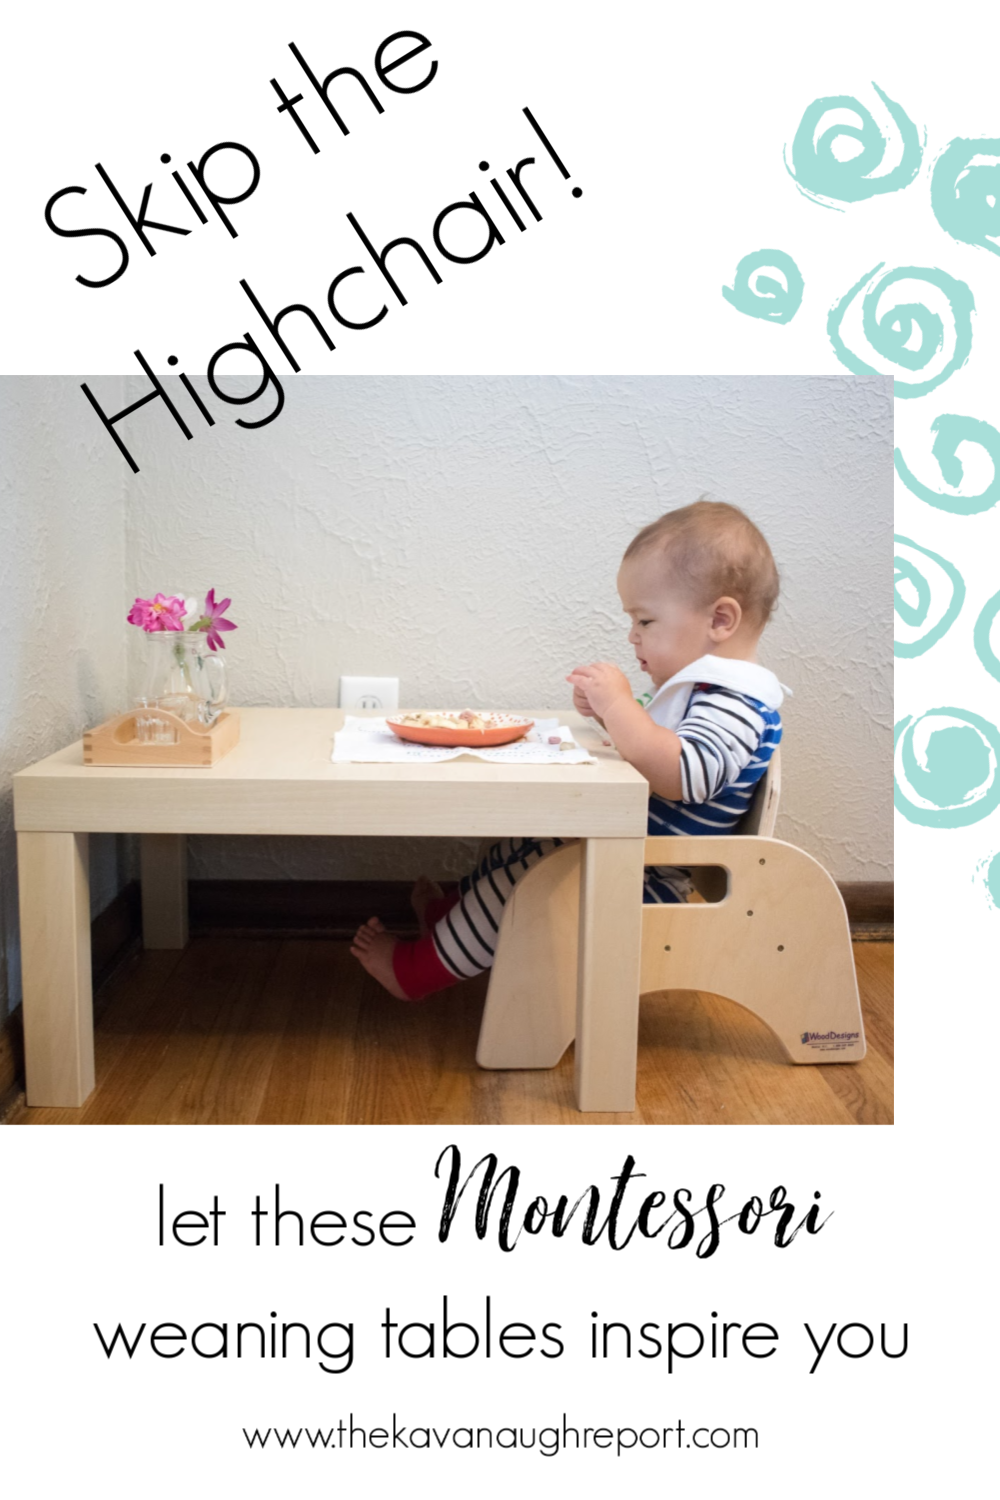 A look at different Montessori home setups for baby eating spaces. These small weaning tables are a perfect baby activity area and provide opportunities for independent eating